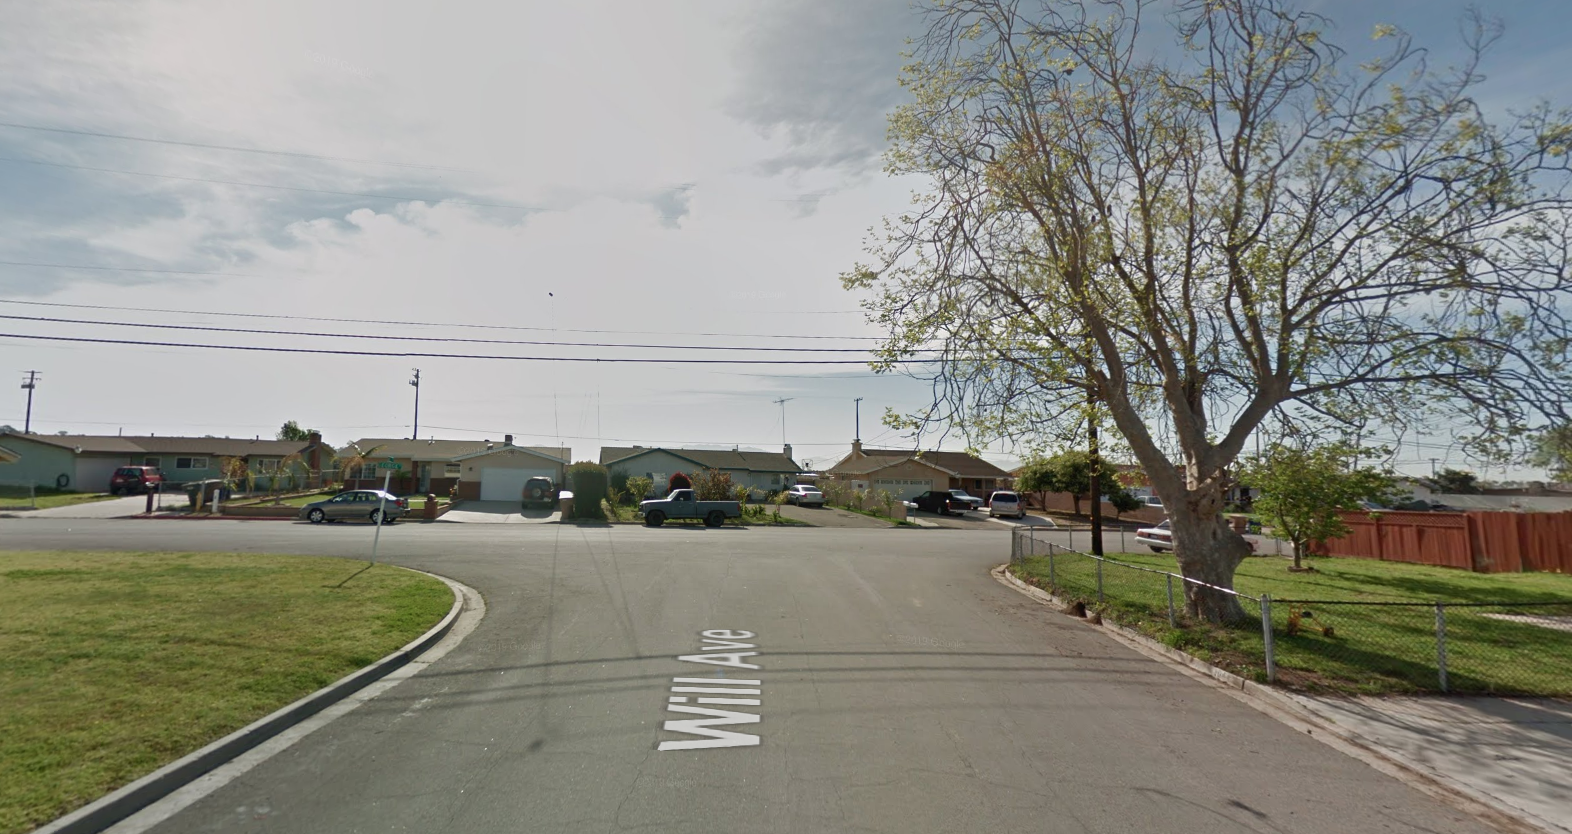 A Google Maps image shows Will Avenue and George Street in the unincorporated community of El Rio in Ventura County.